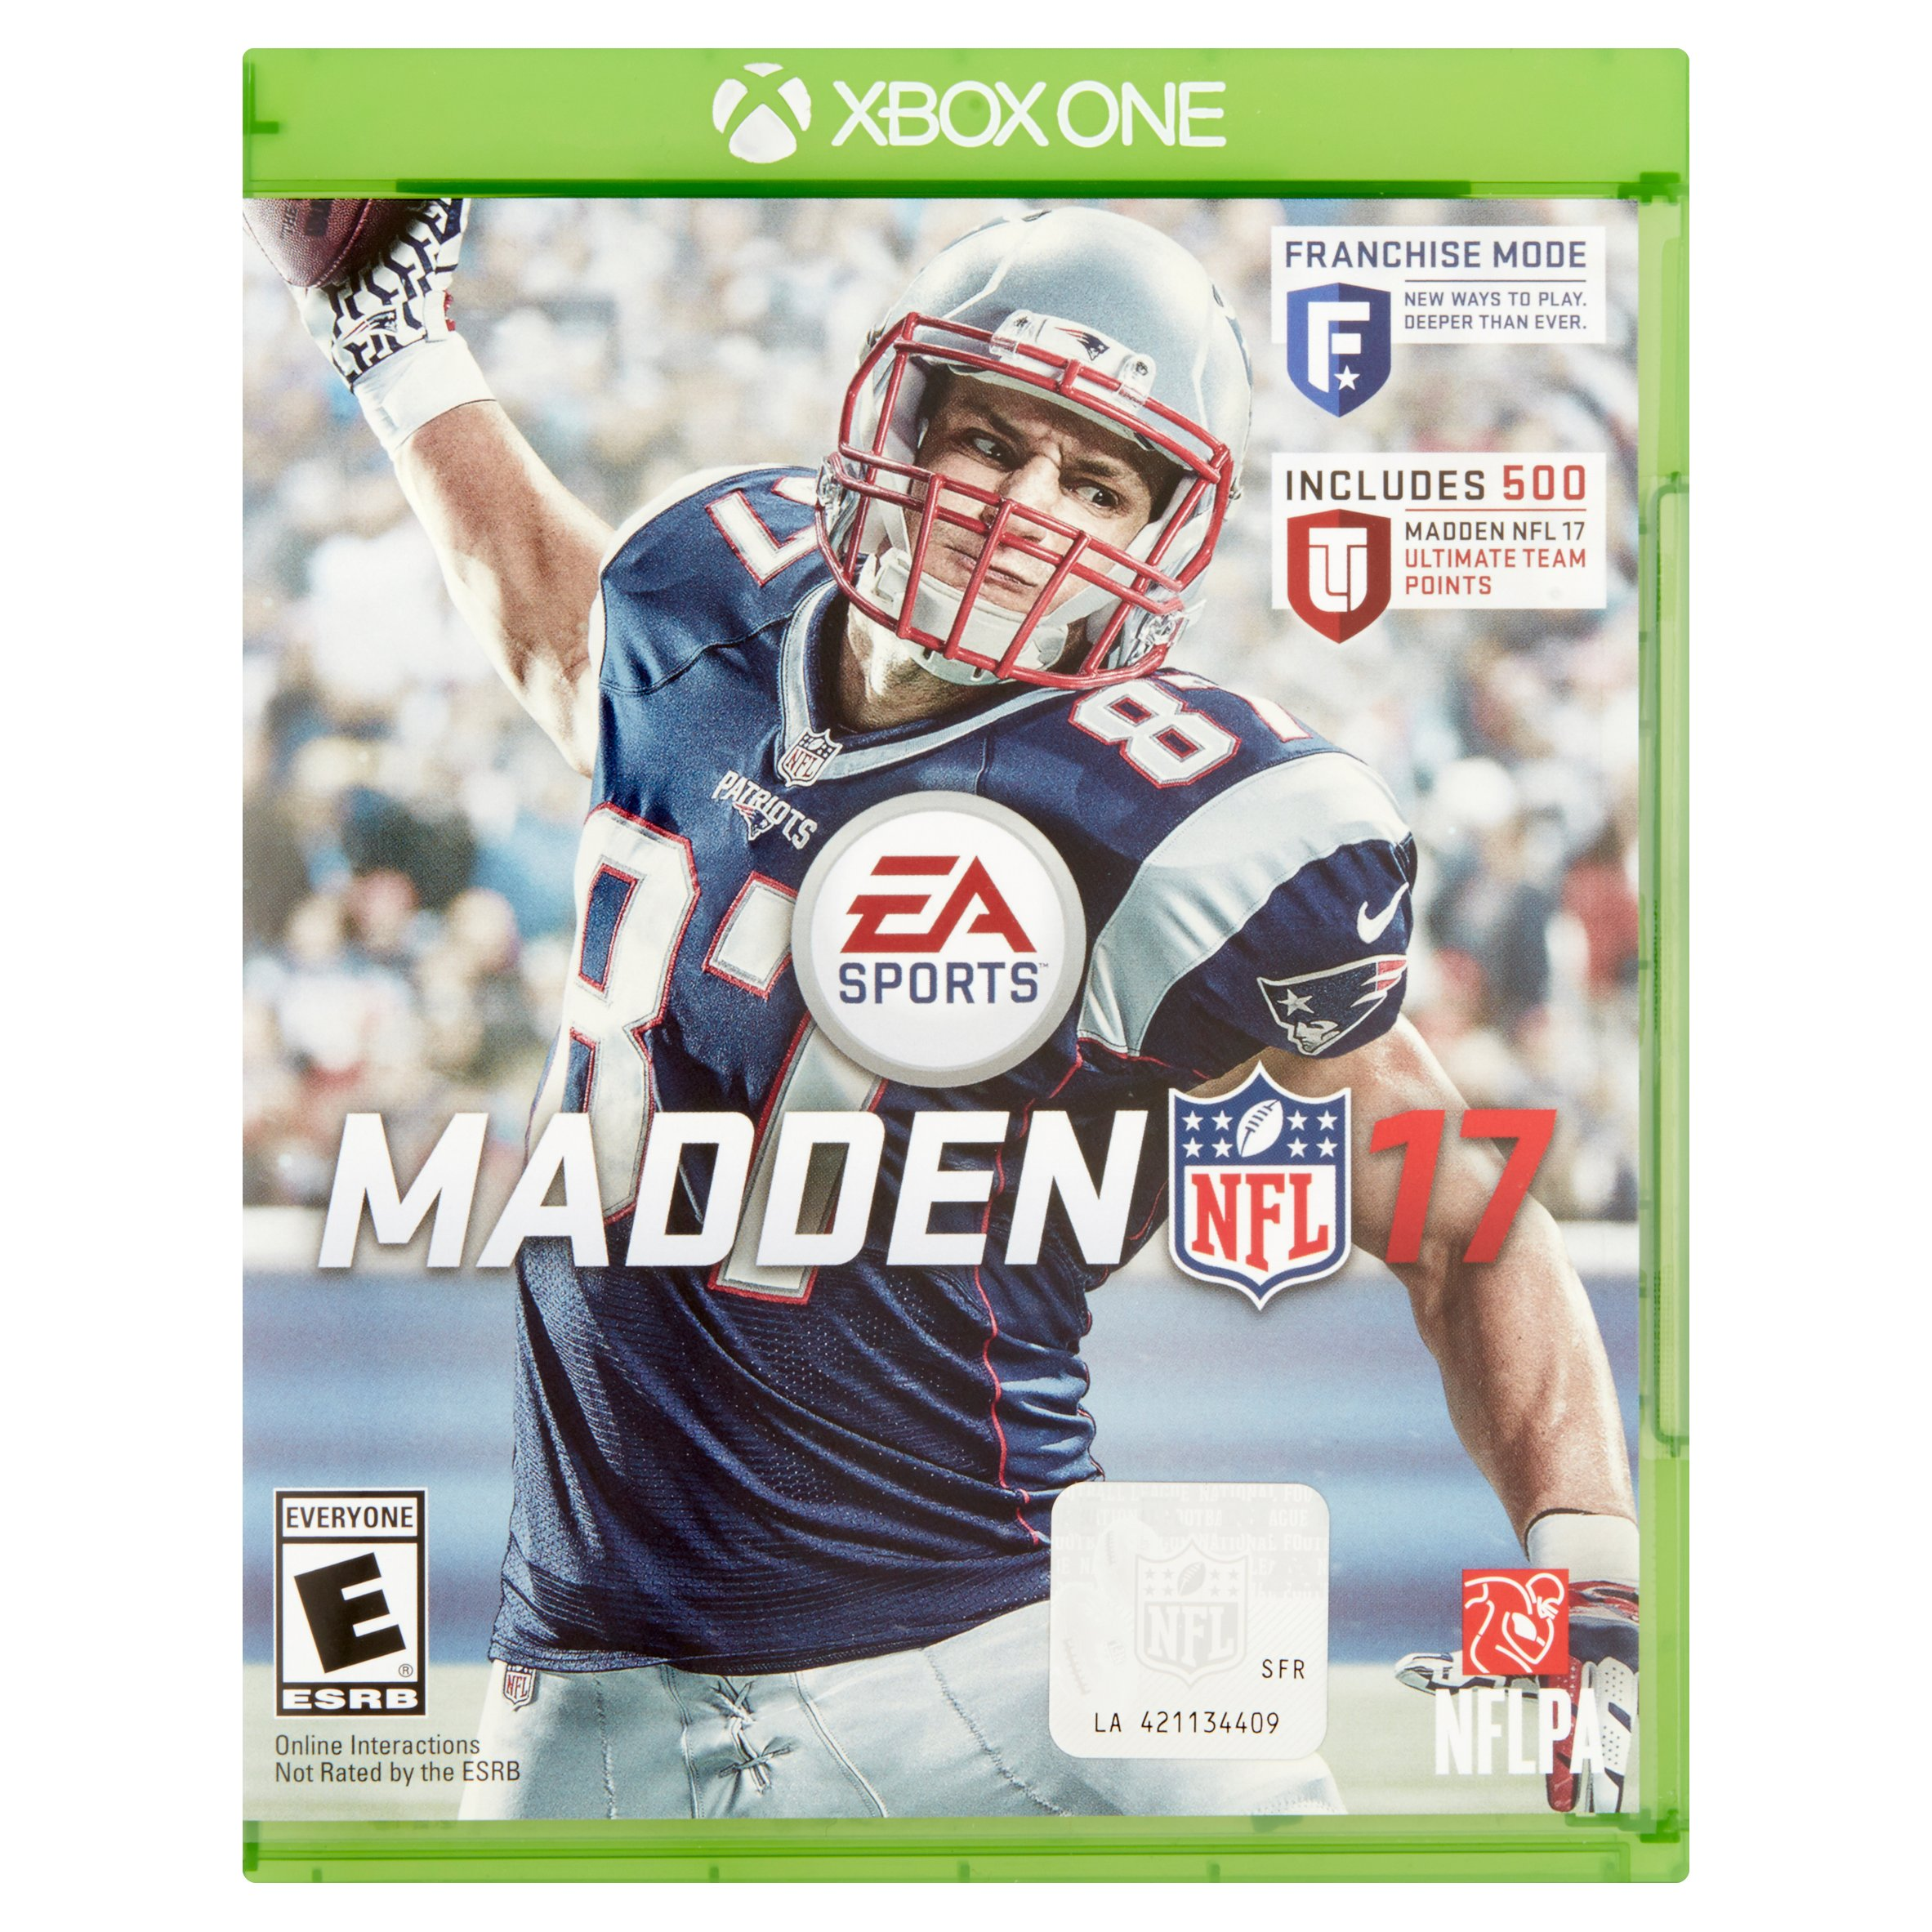 Madden NFL 17, EA Sports (Xbox One)